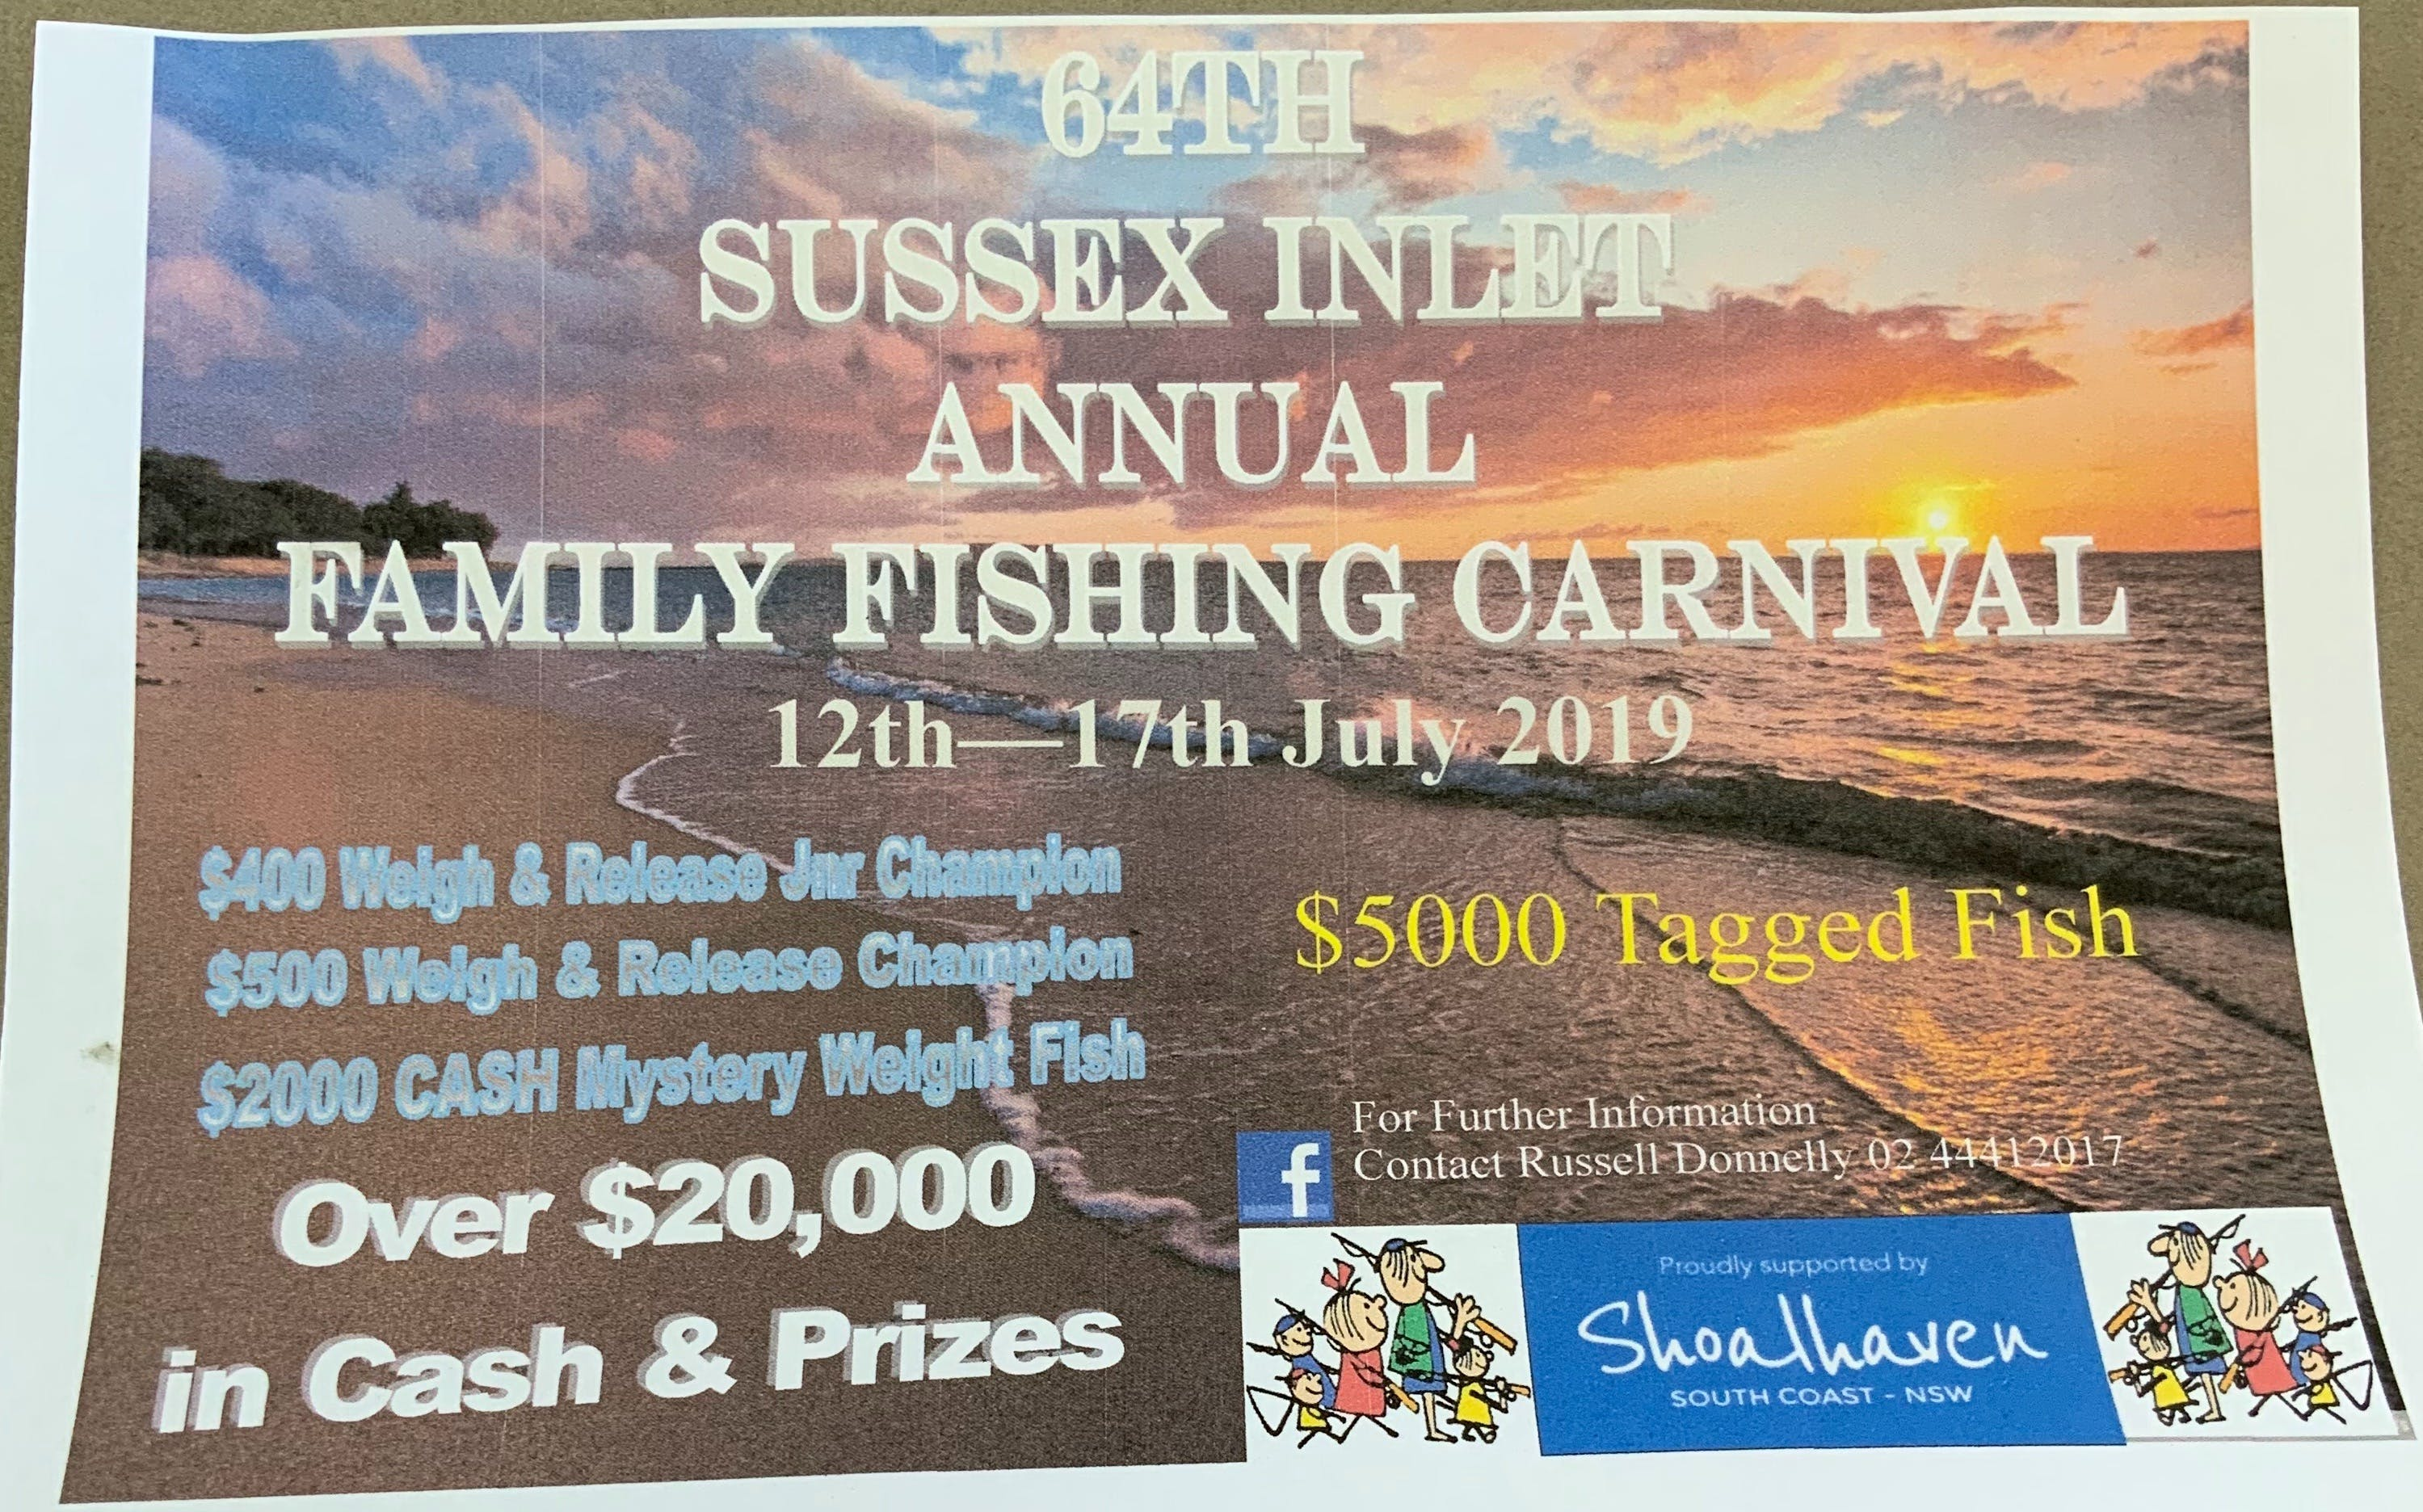 The Sussex Inlet Annual Family Fishing Carnival - Sydney Tourism